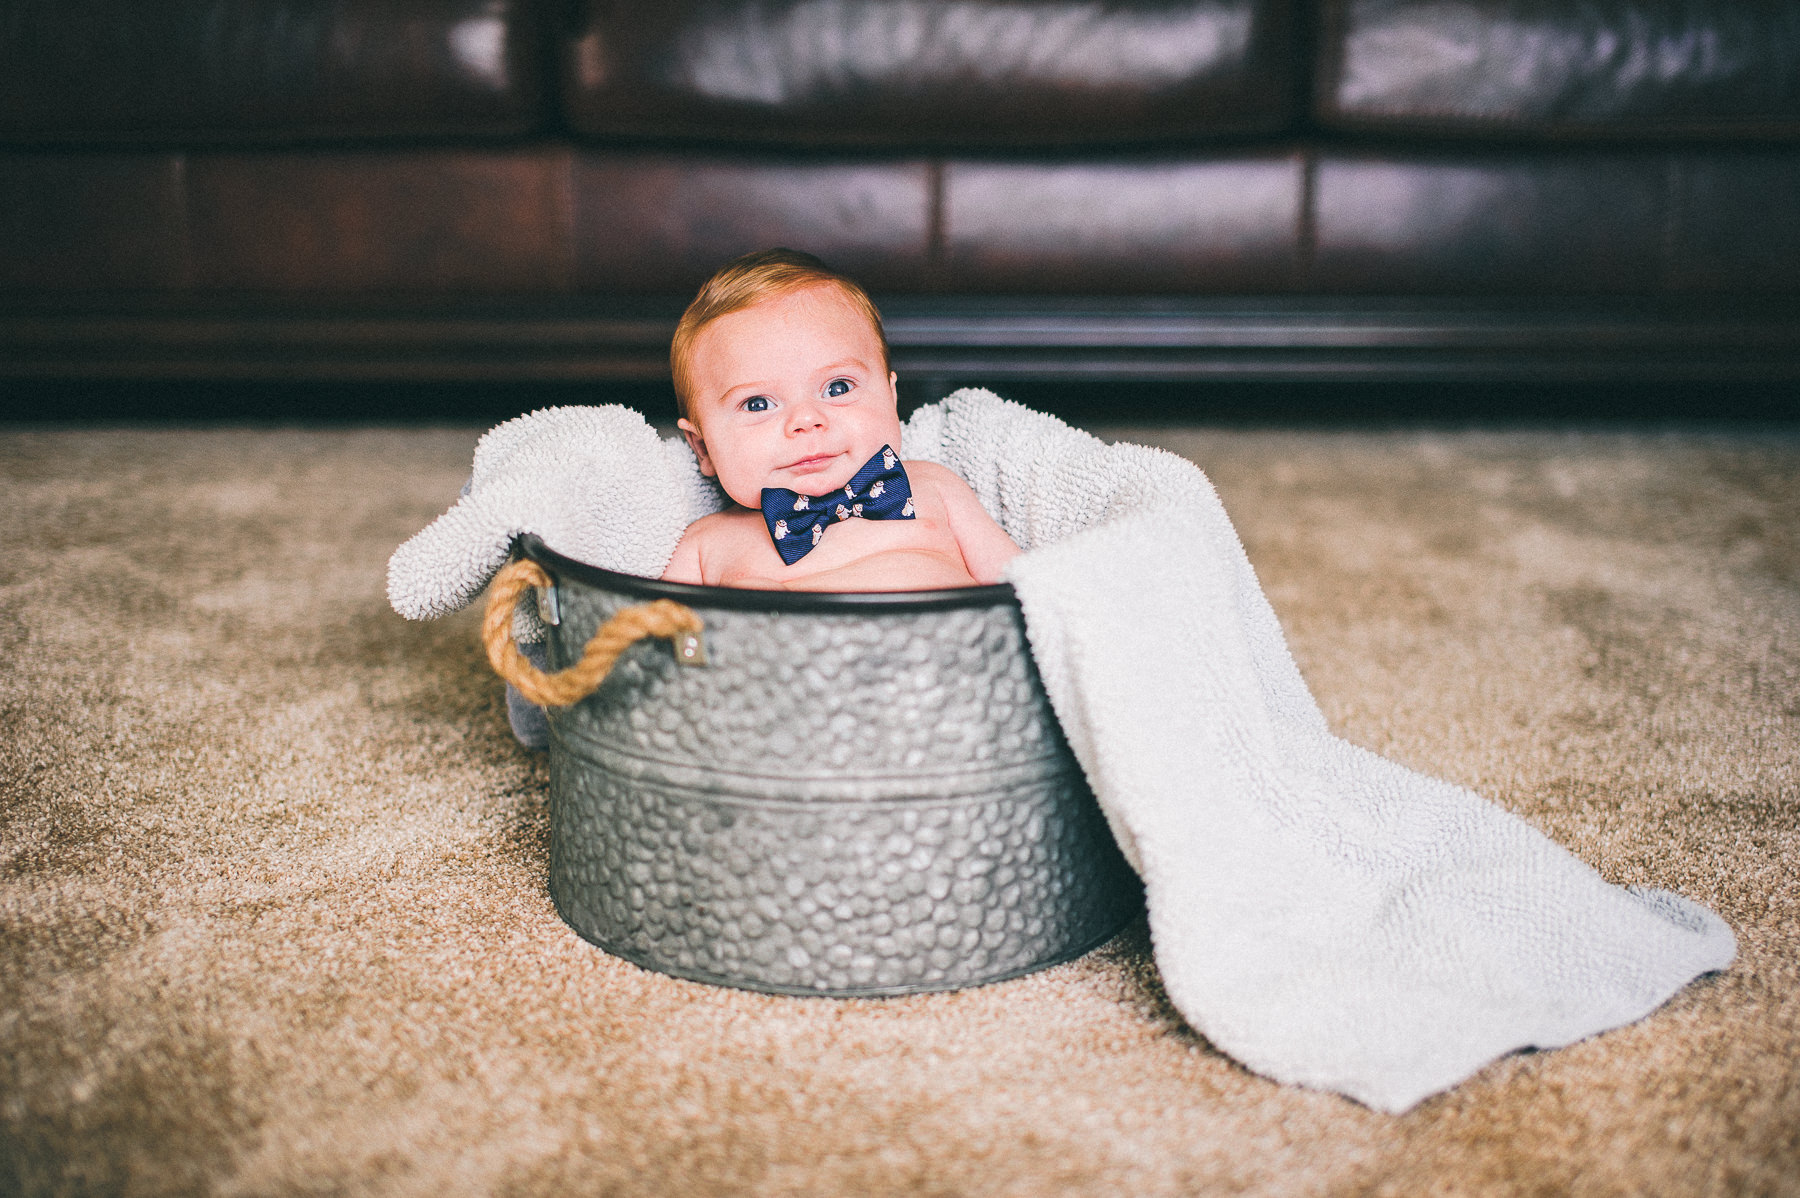 breighton-and-basette-photography-copyrighted-image-blog-croix-newborn-008.jpg